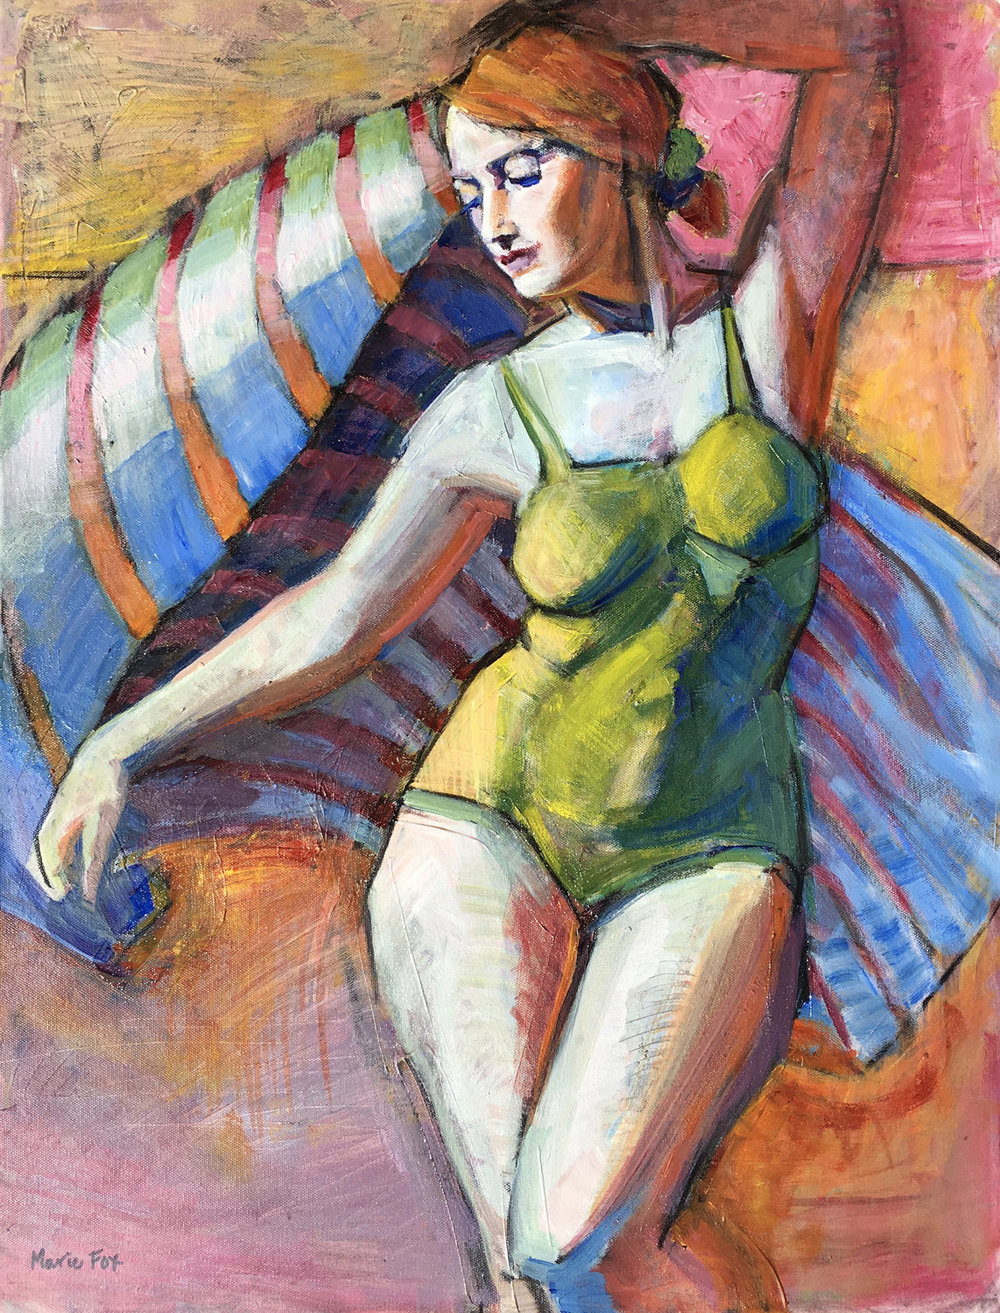 marie-fox-paintings4.jpg